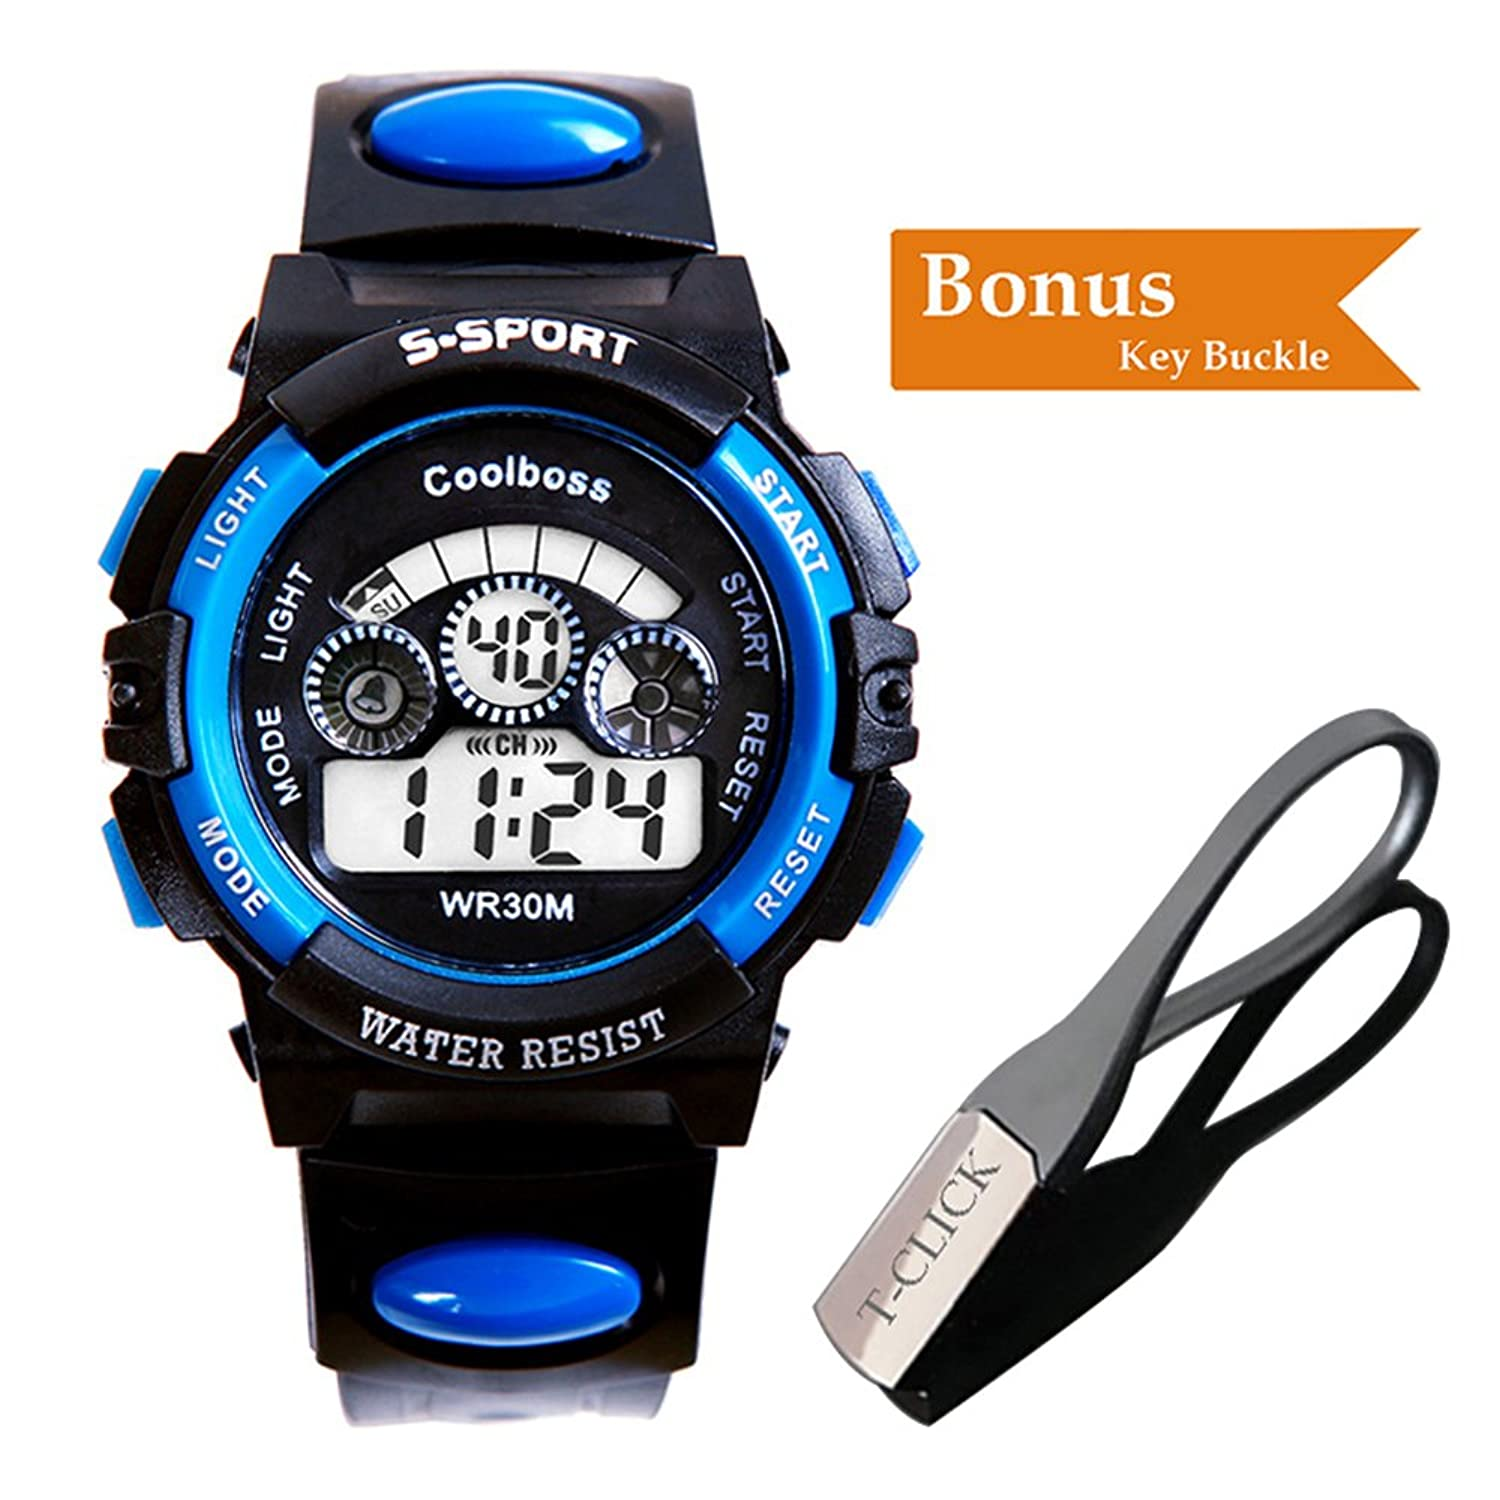 BoZZ CX0119 Multifunction 7-Color Led Light Digital S - Sport Wrist Watch (Blue For Over 10 Years Old )